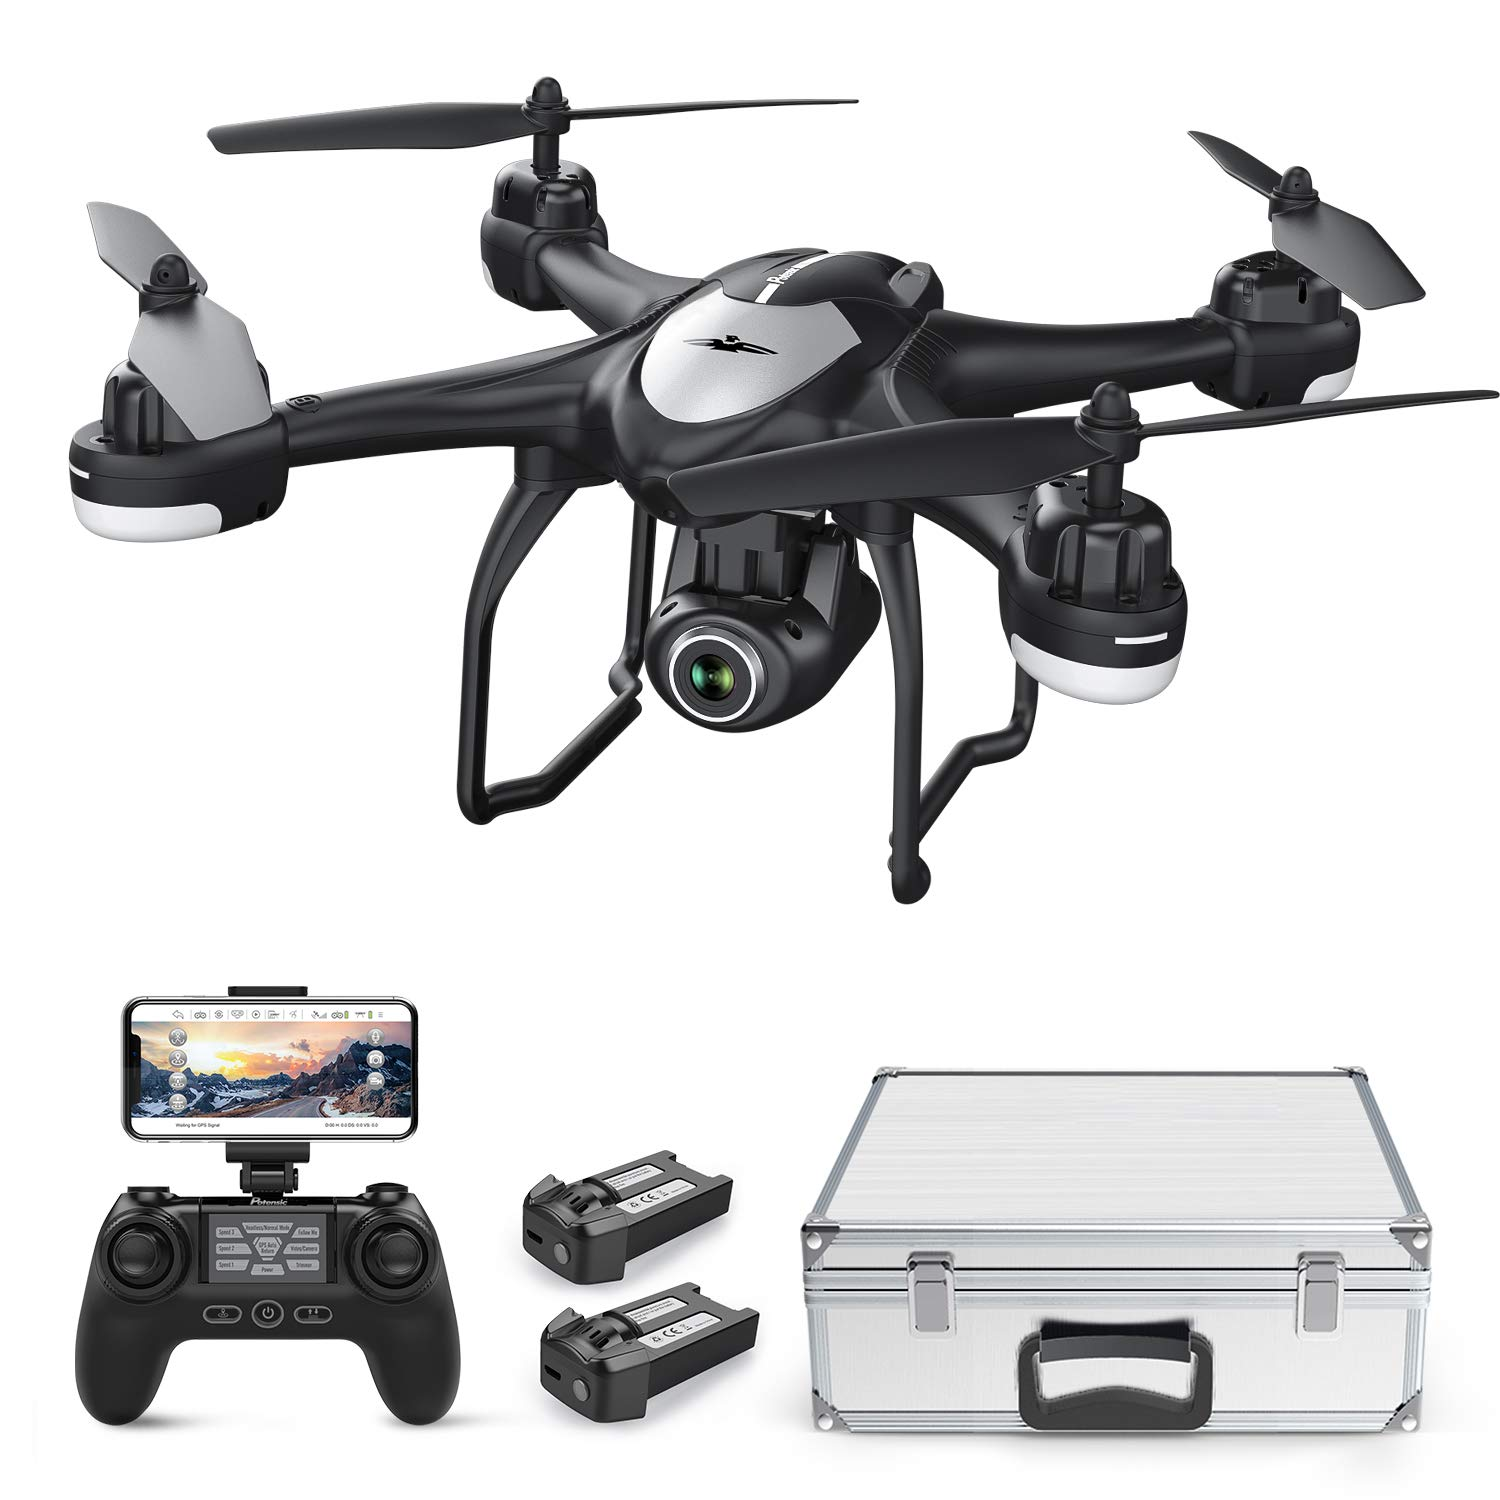 Fantastic drone for the price!